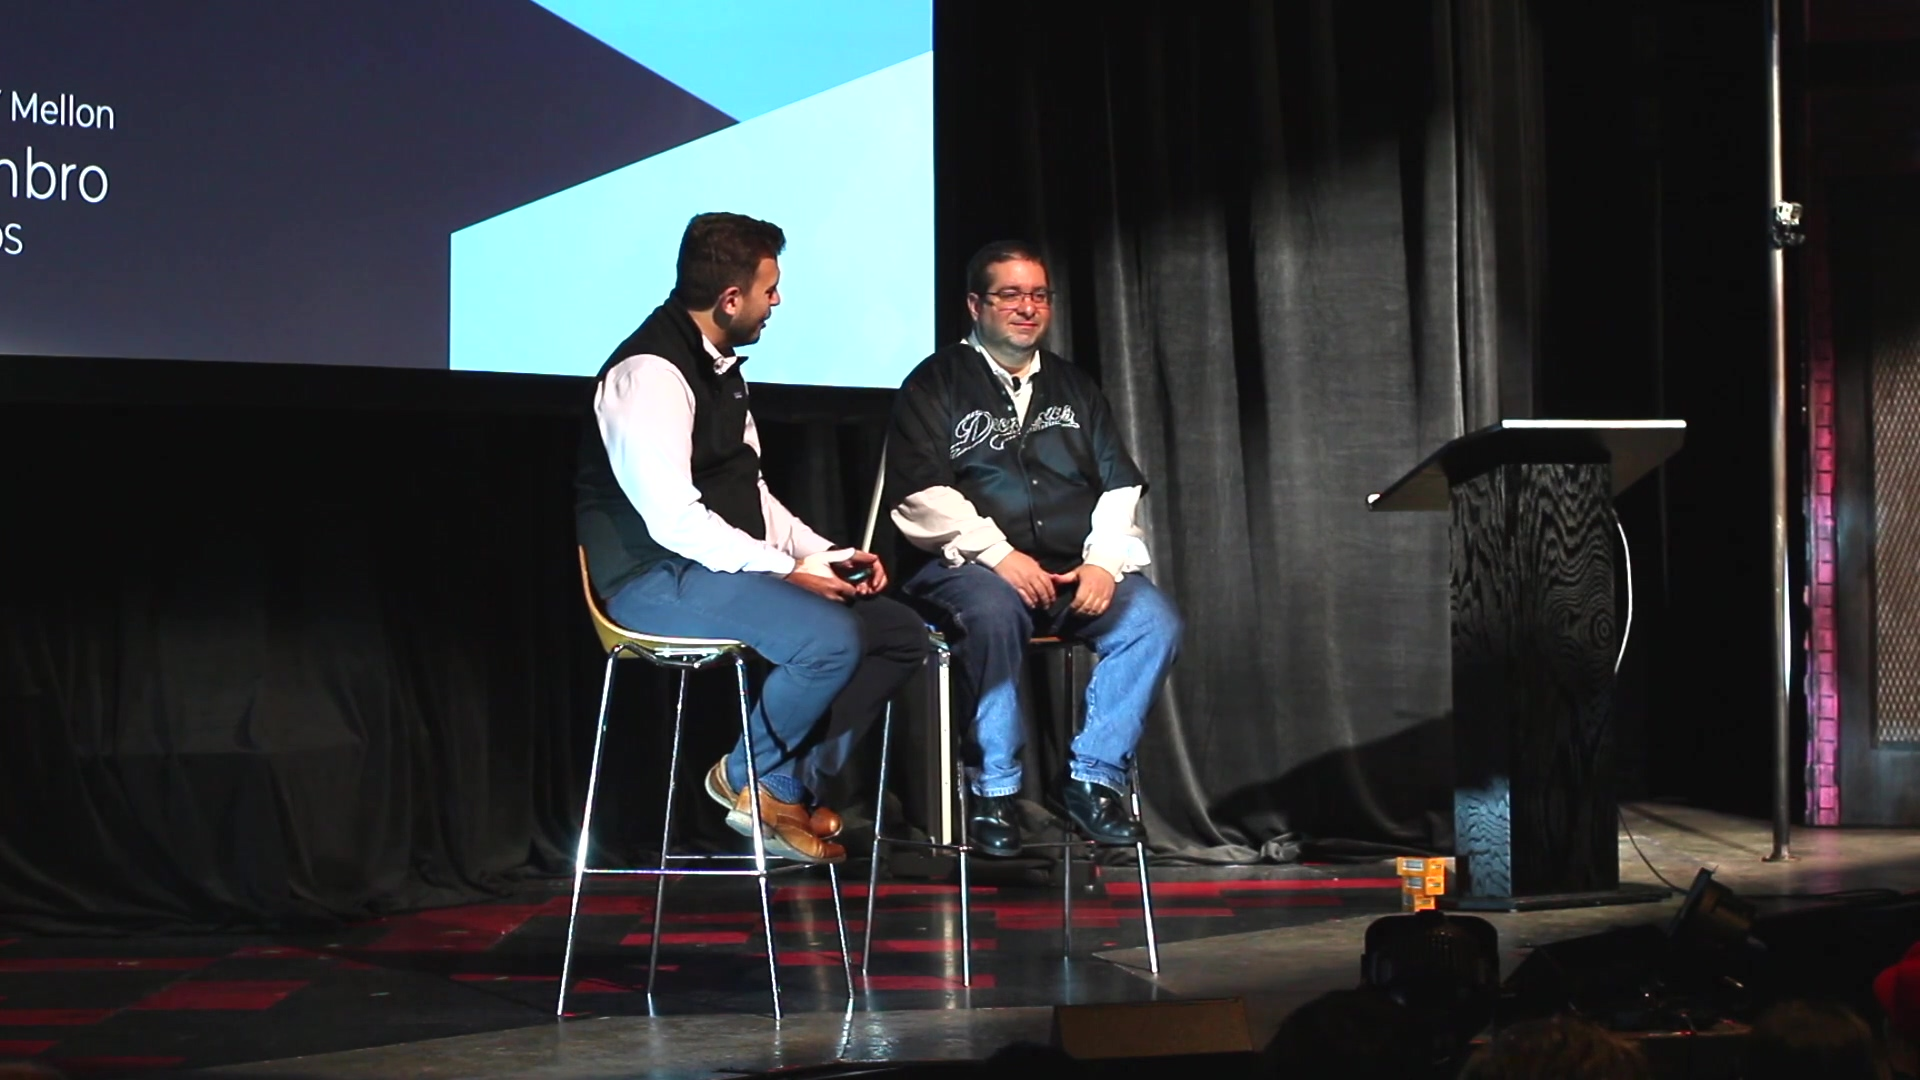 Donald Raab - Fireside Chat - FINOS OSSF 2019